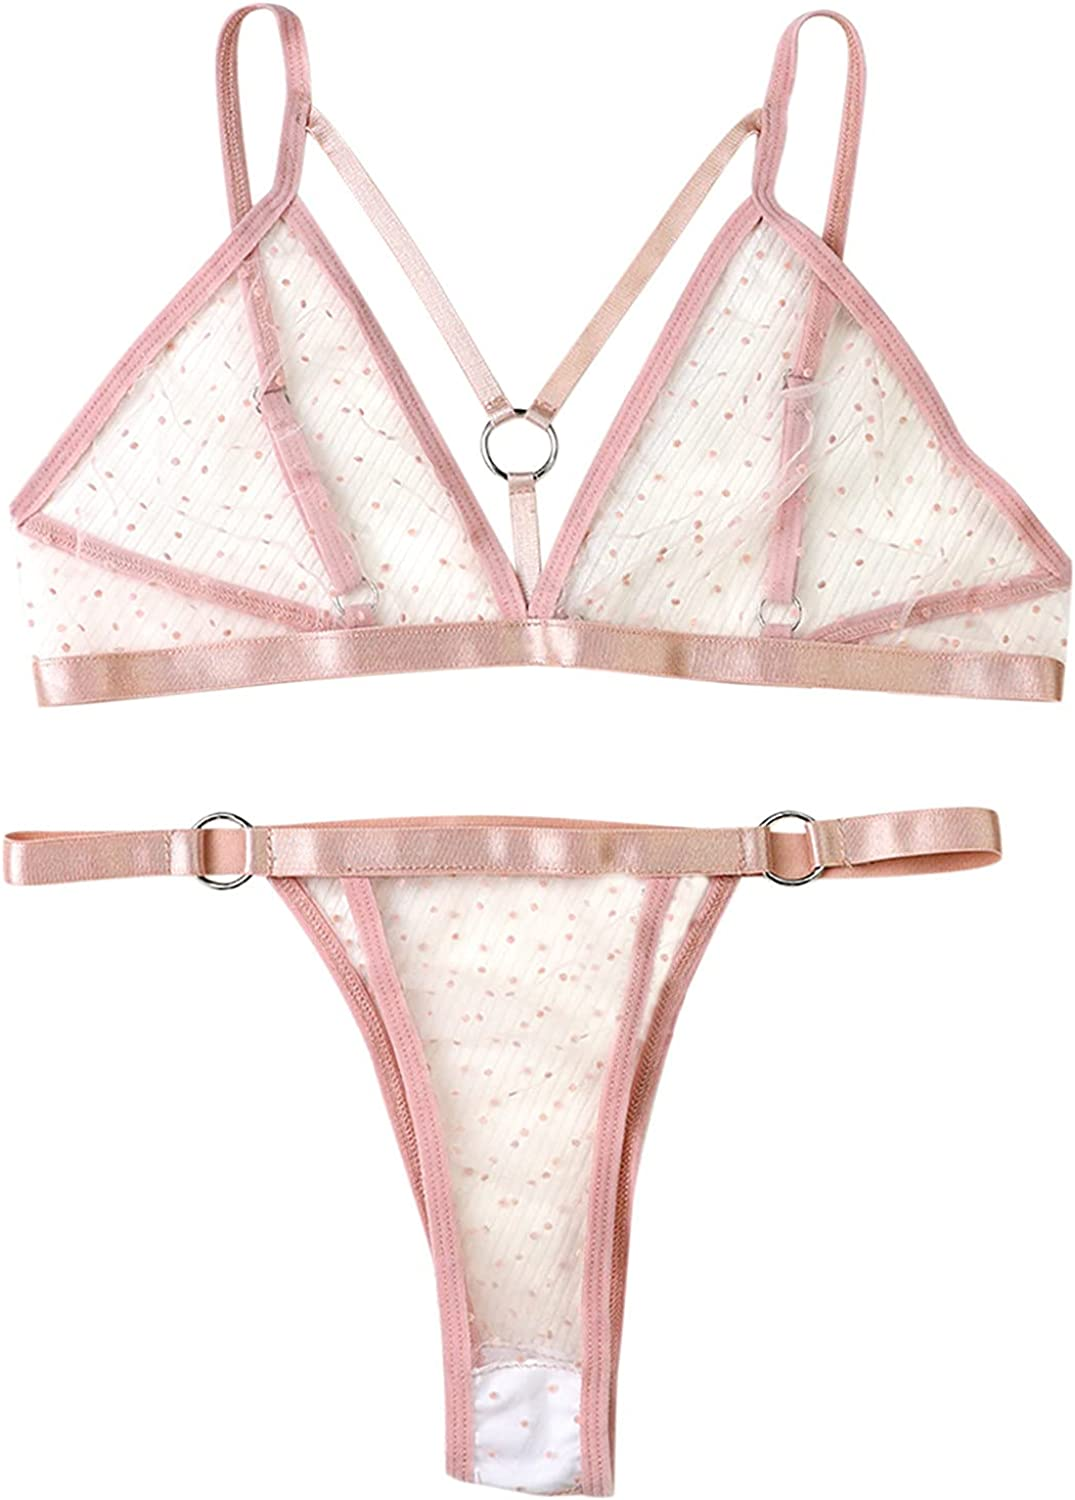 Lingerie Suit for Women's Sexy Lace Intimates 3/4 Cup See-Through Underwear Female Three-Point Modal Underwear Set